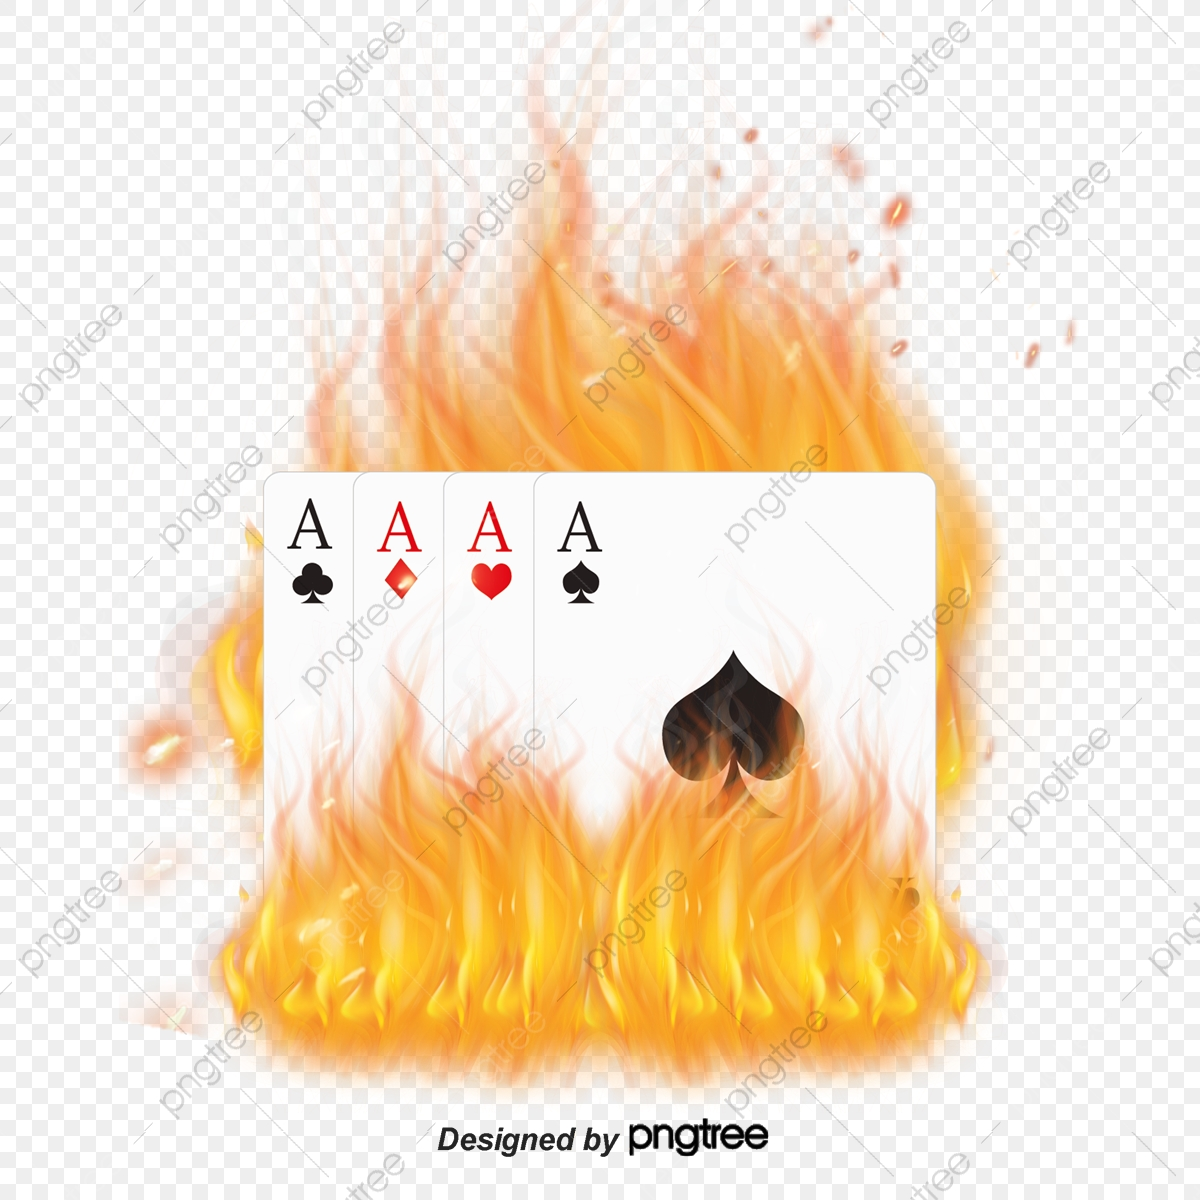 Blue Fire Card, Poker, Card, Flame PNG Transparent Clipart Image and.